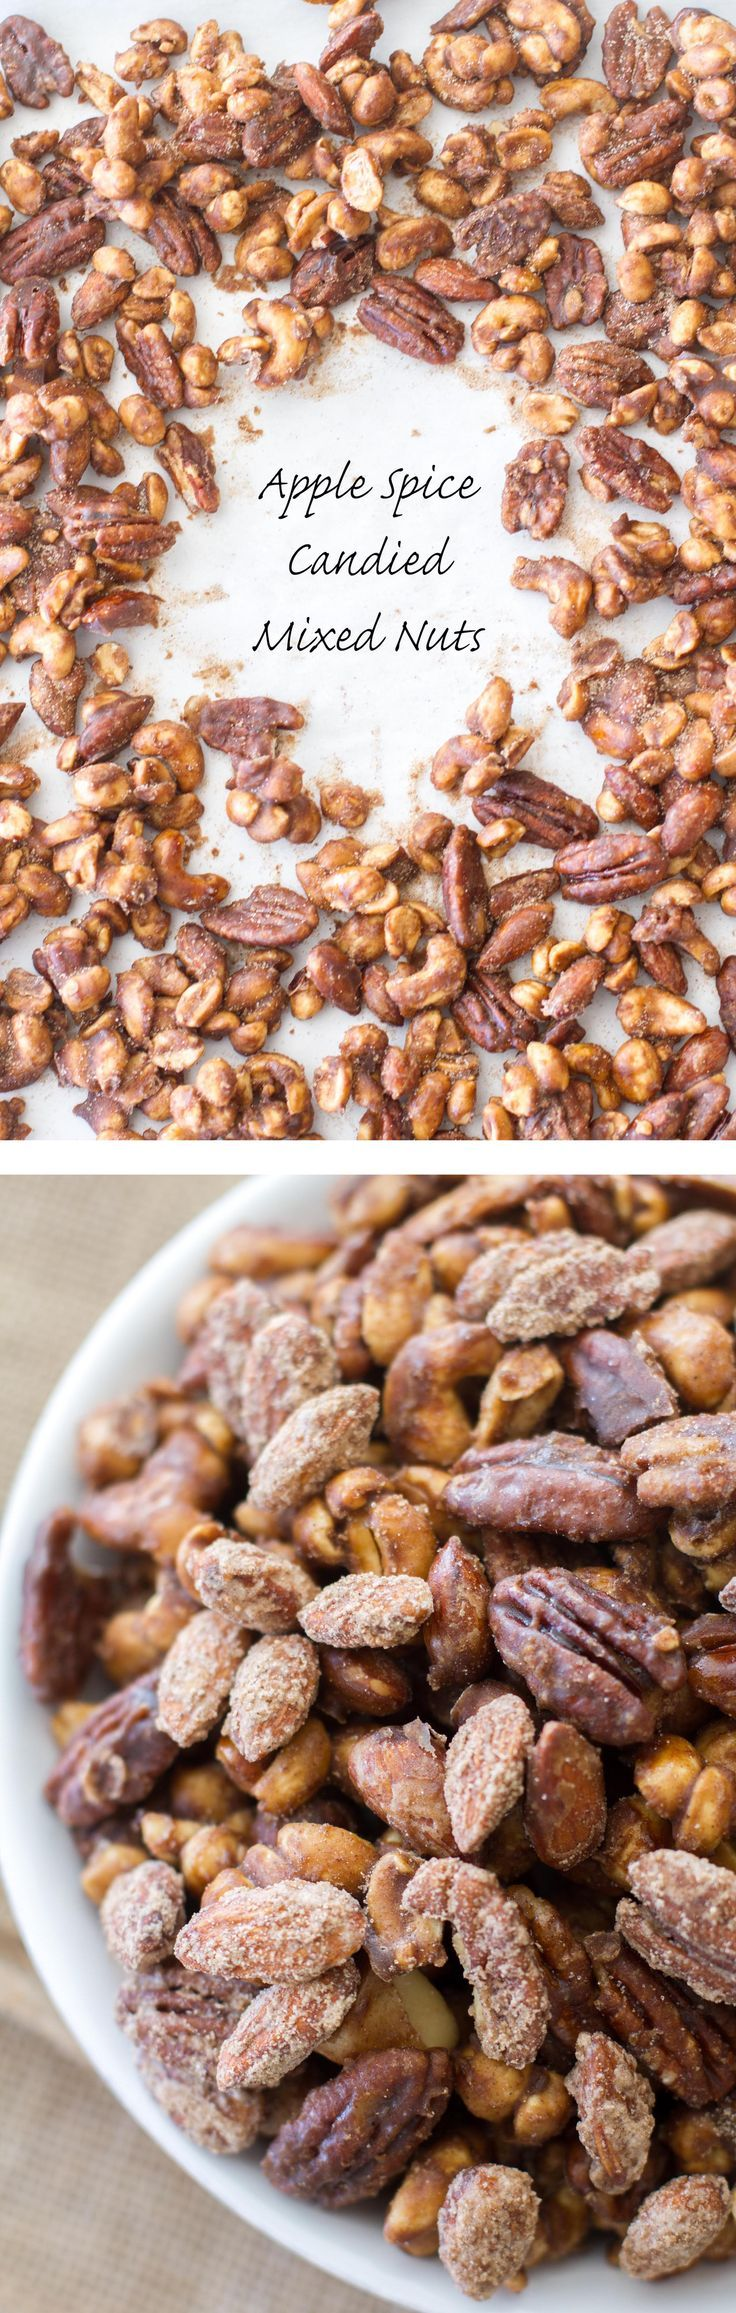 Apple Spice Candied Mixed Nuts | Recipe | Holiday parties ...